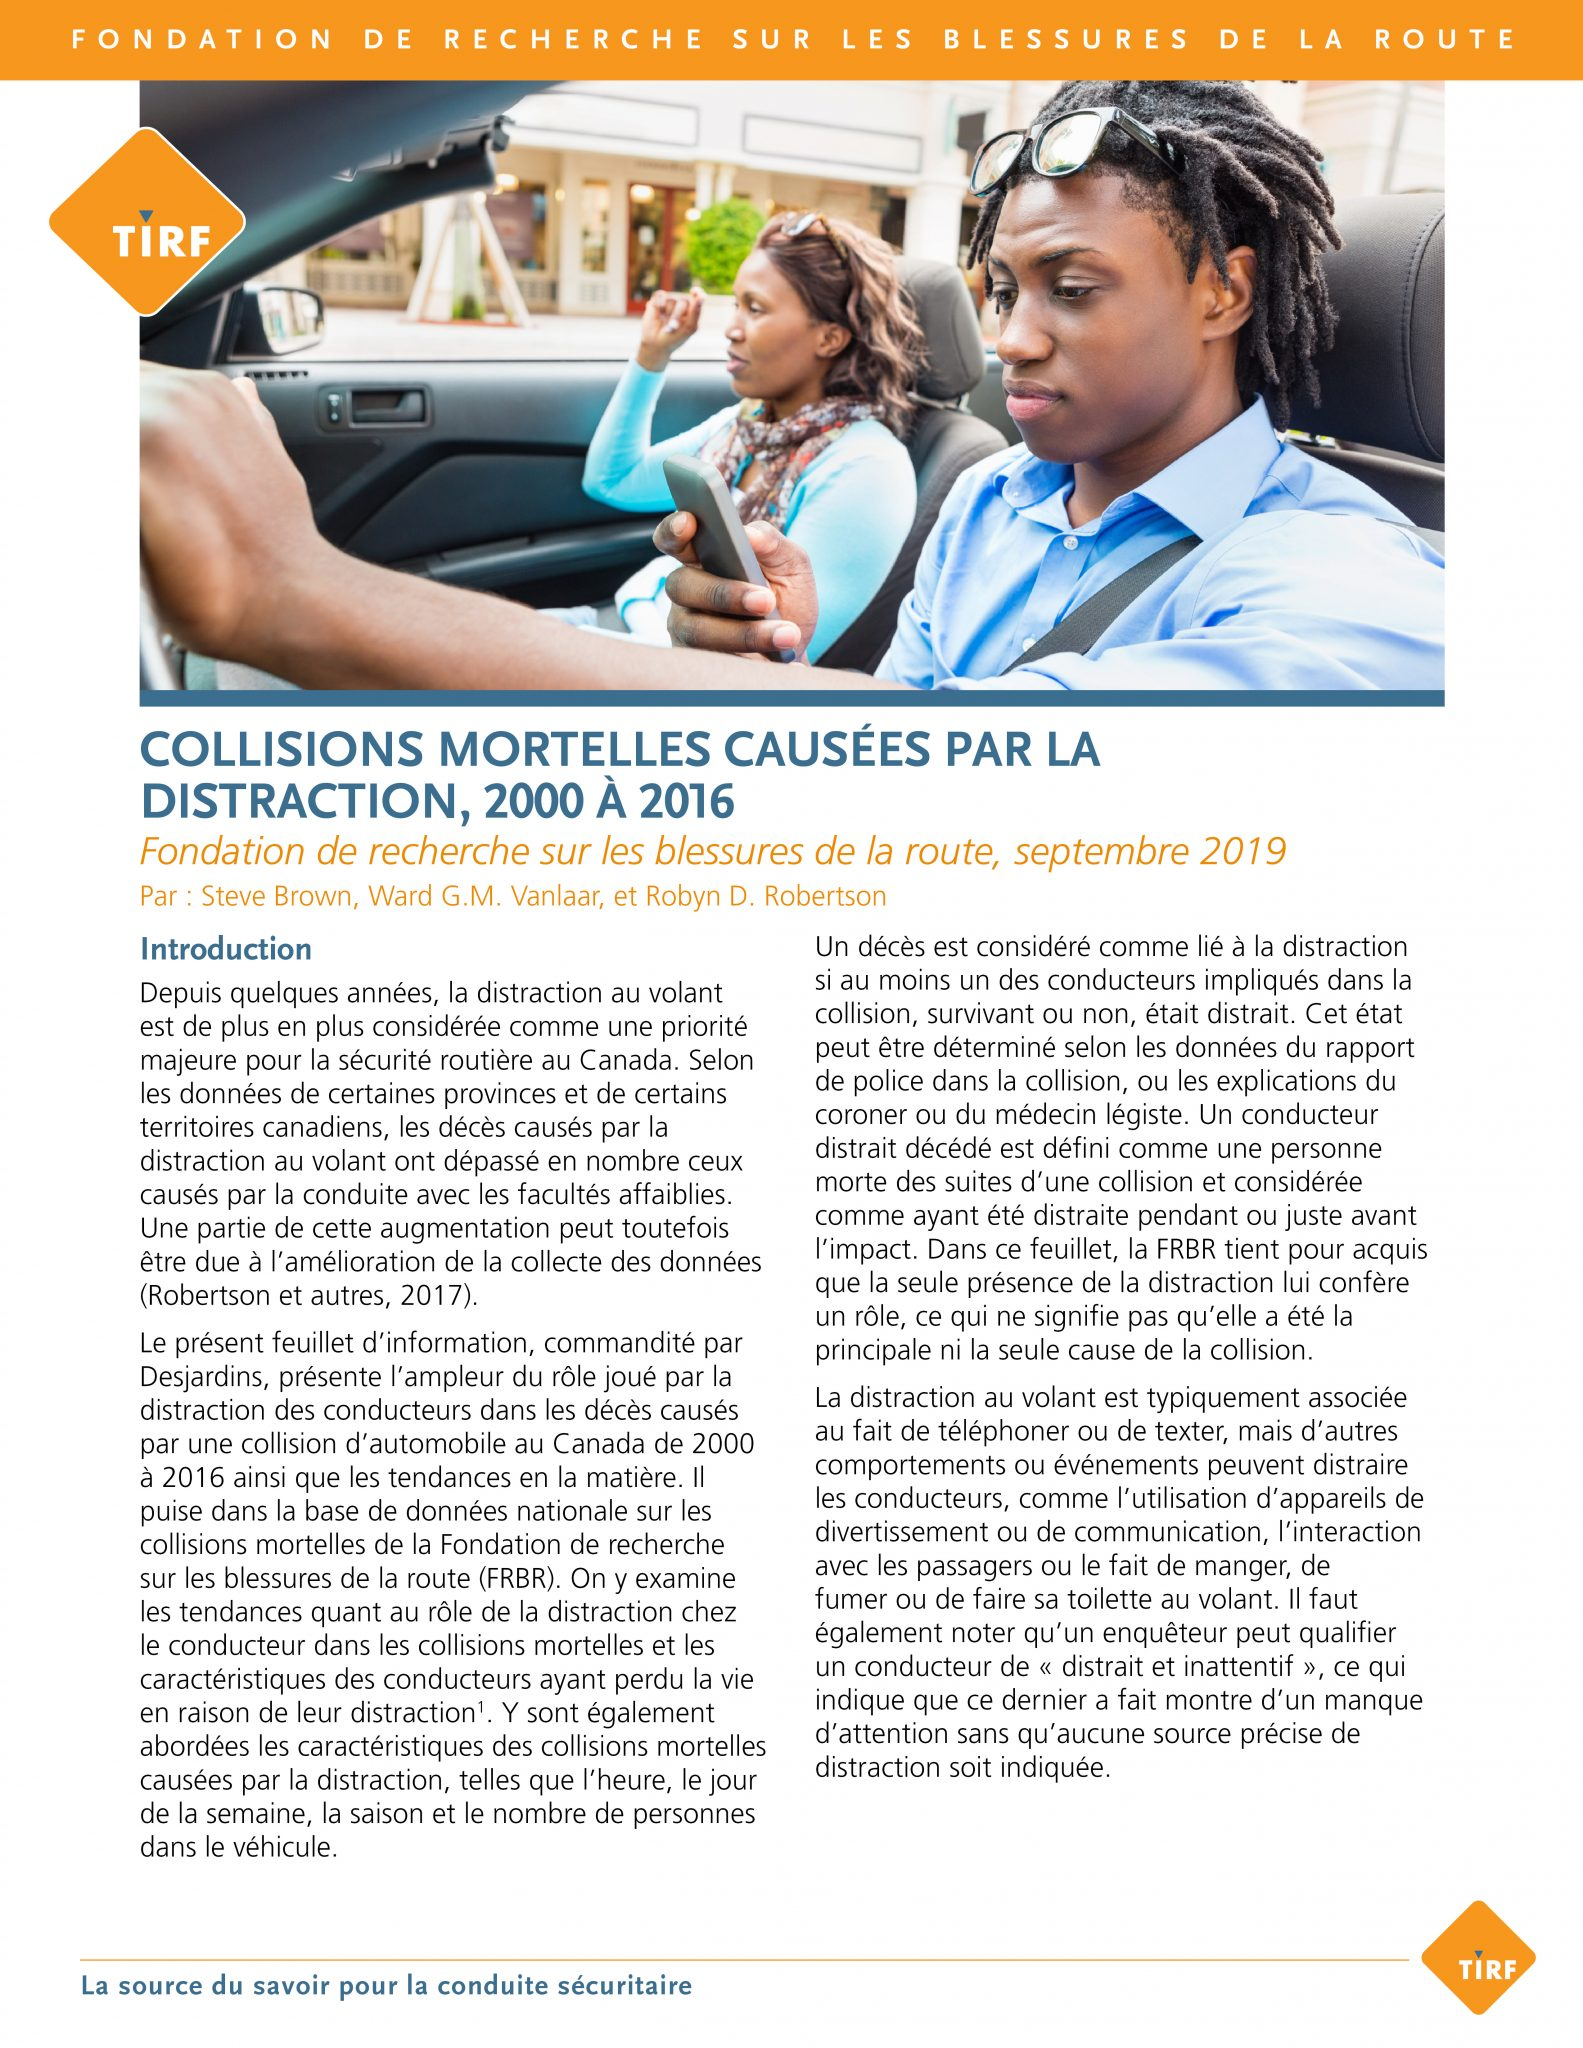 Collisions mortelles causées par la distraction, 2000-2016